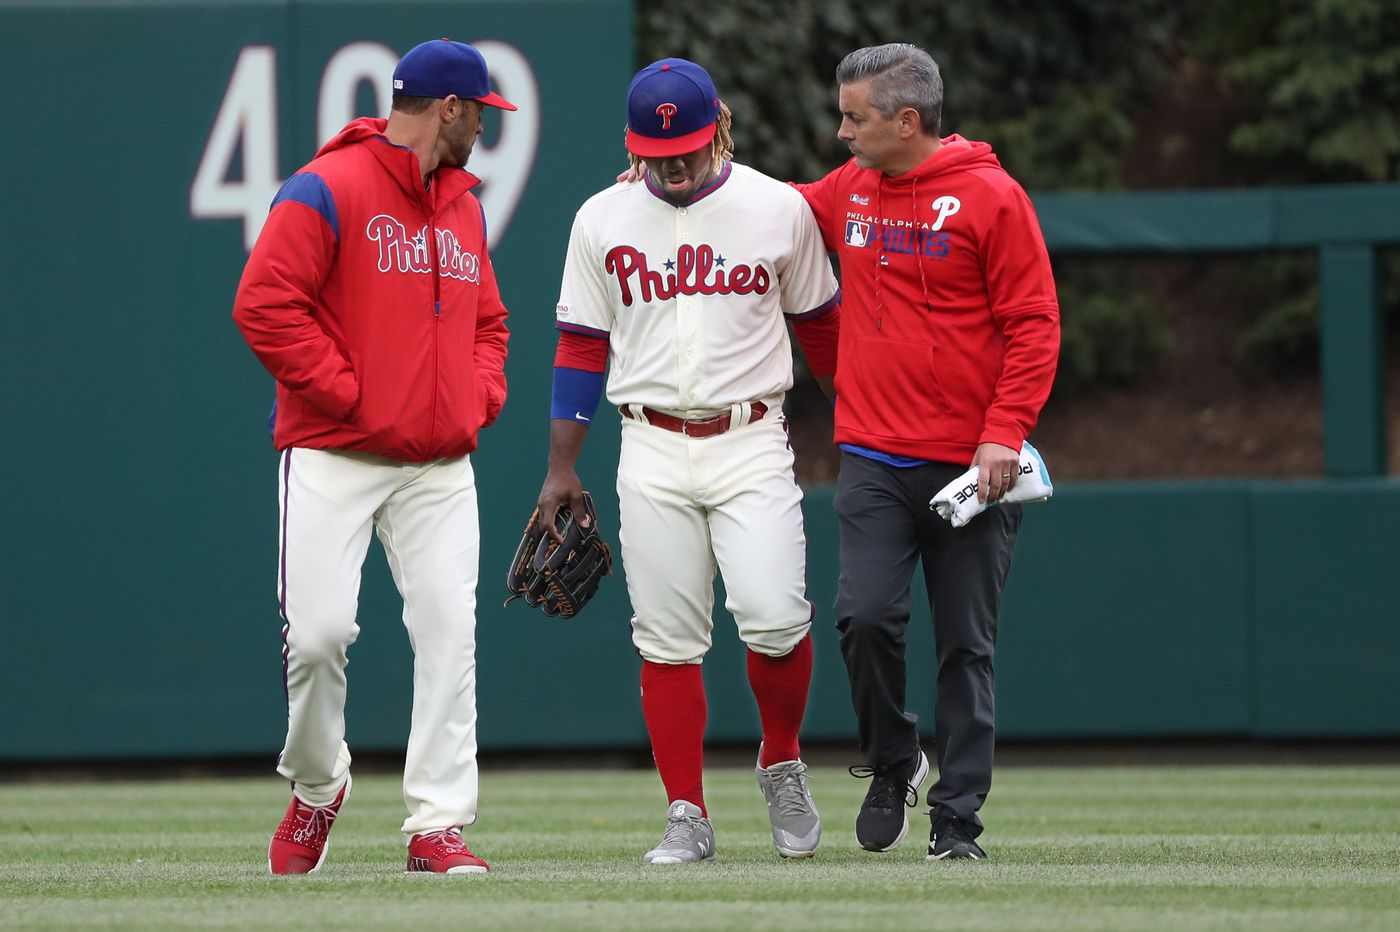 Spate of hamstring injuries has Phillies examining how they prepare players